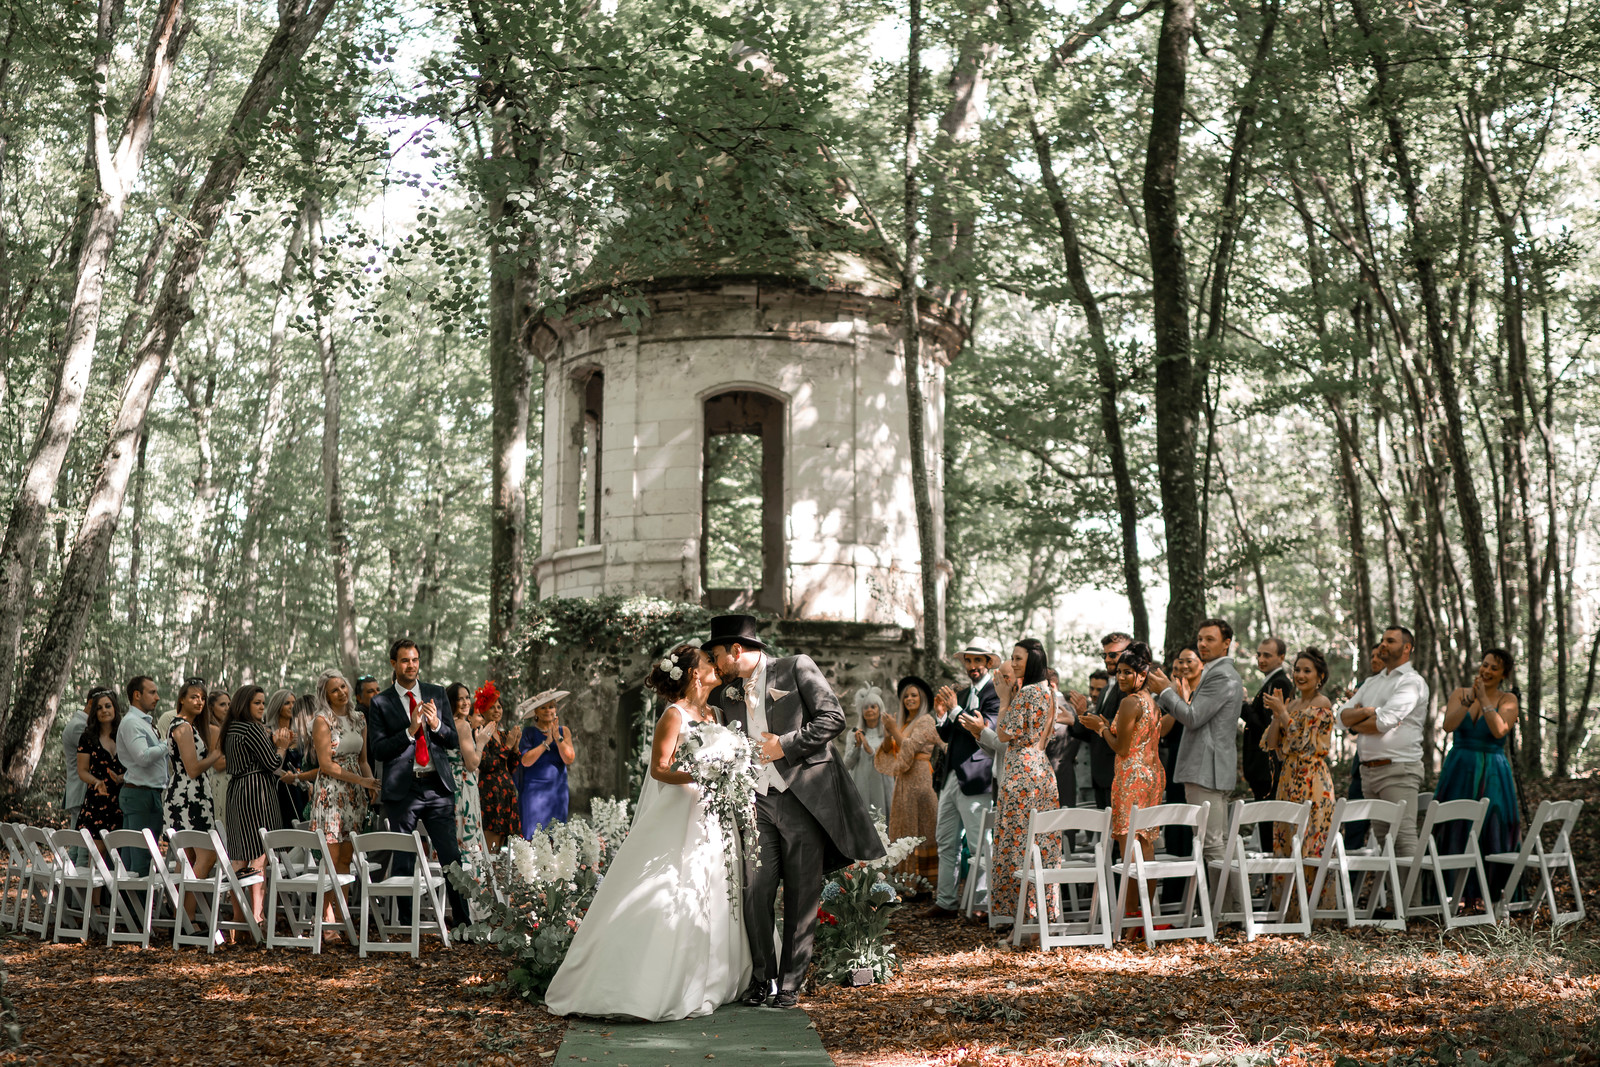 Bride and groom kiss as their family and friends are clapping